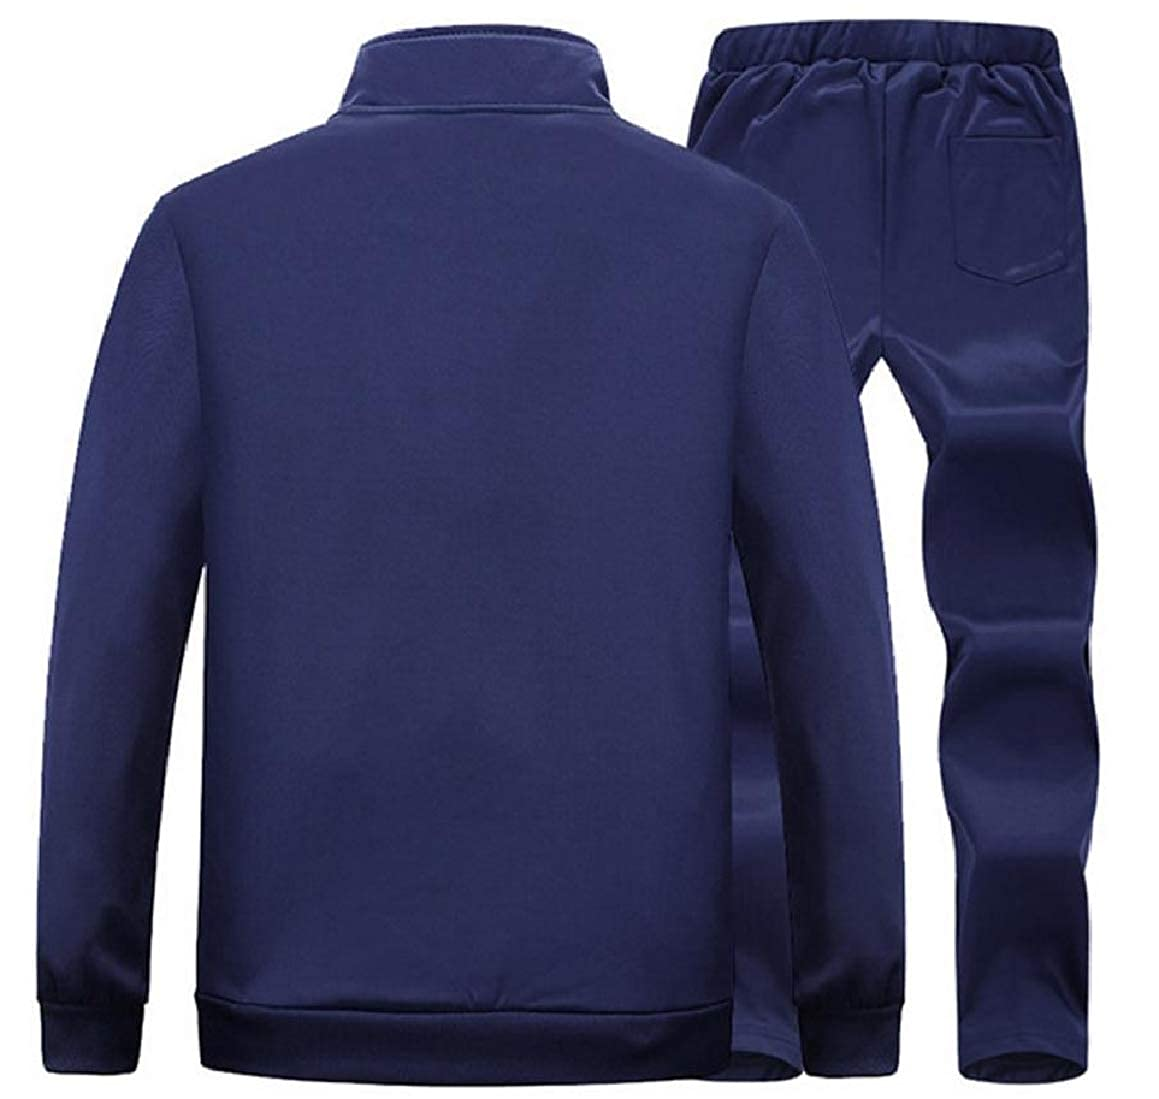 Sayah Mens Stand up Collar Luxury Athletic with Zip Sweatshirt and Skinny Long Pants